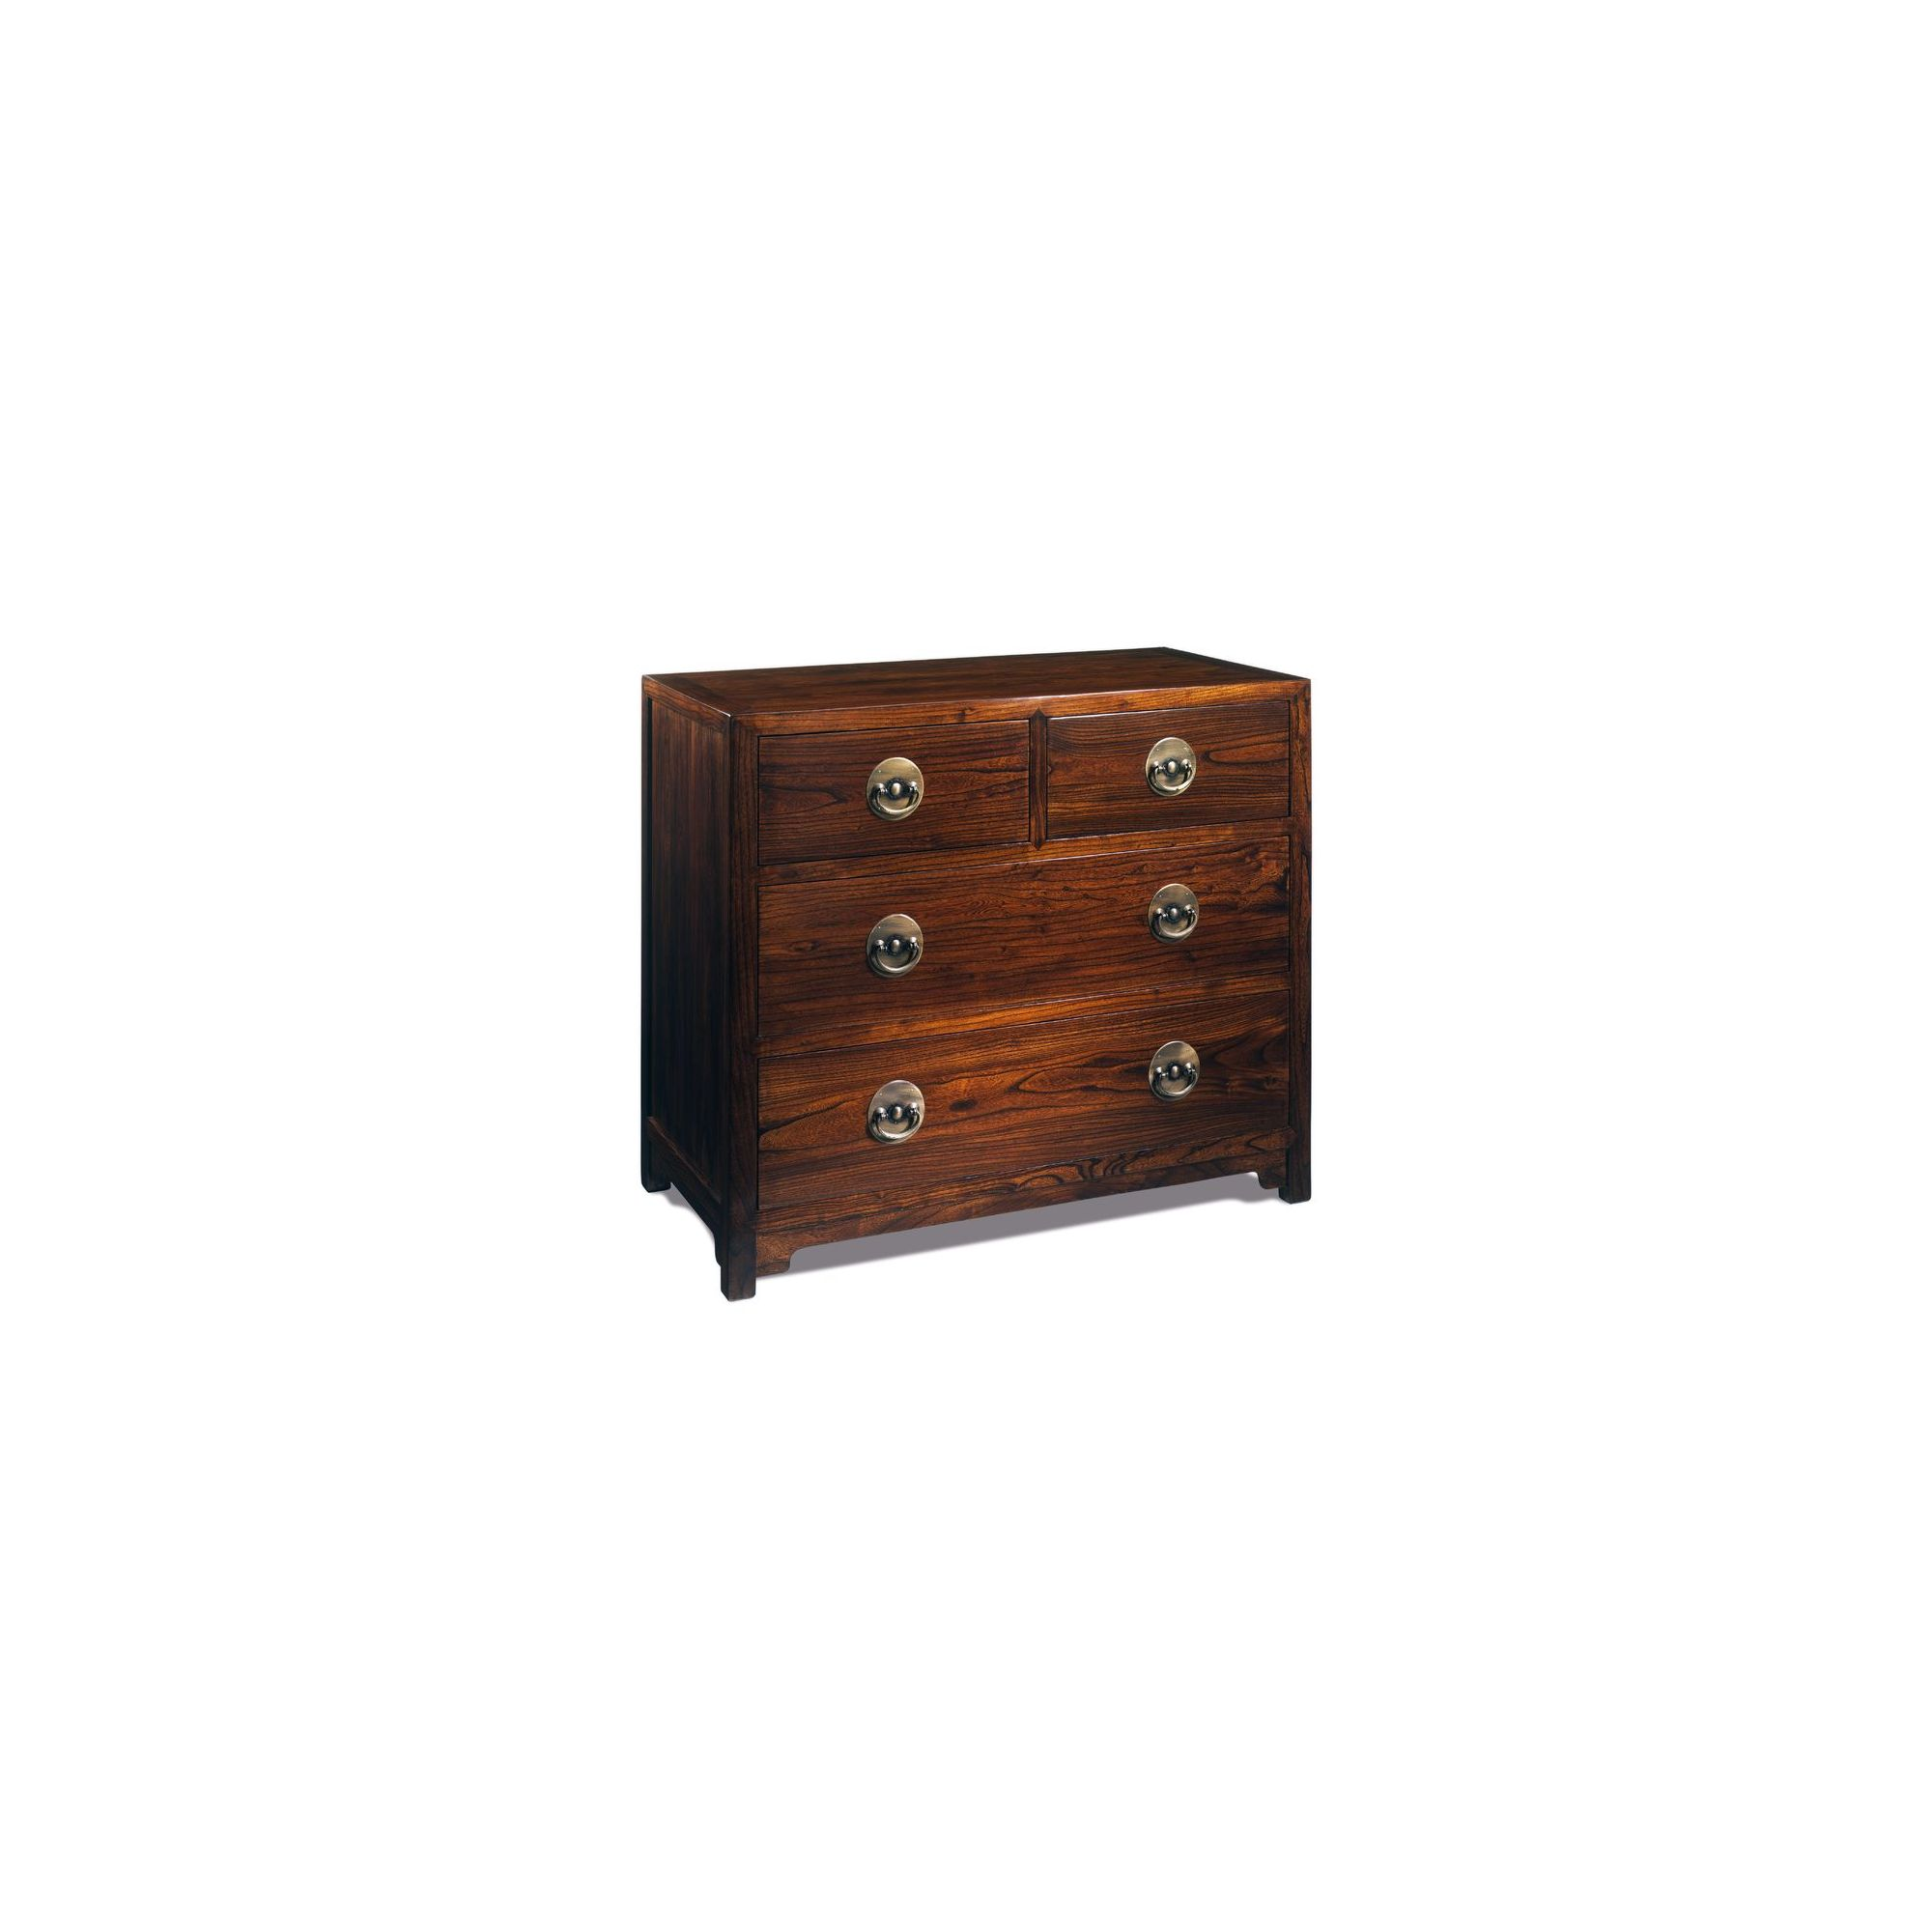 Shimu Chinese Classical Large Chest of Drawers - Warm Elm at Tesco Direct